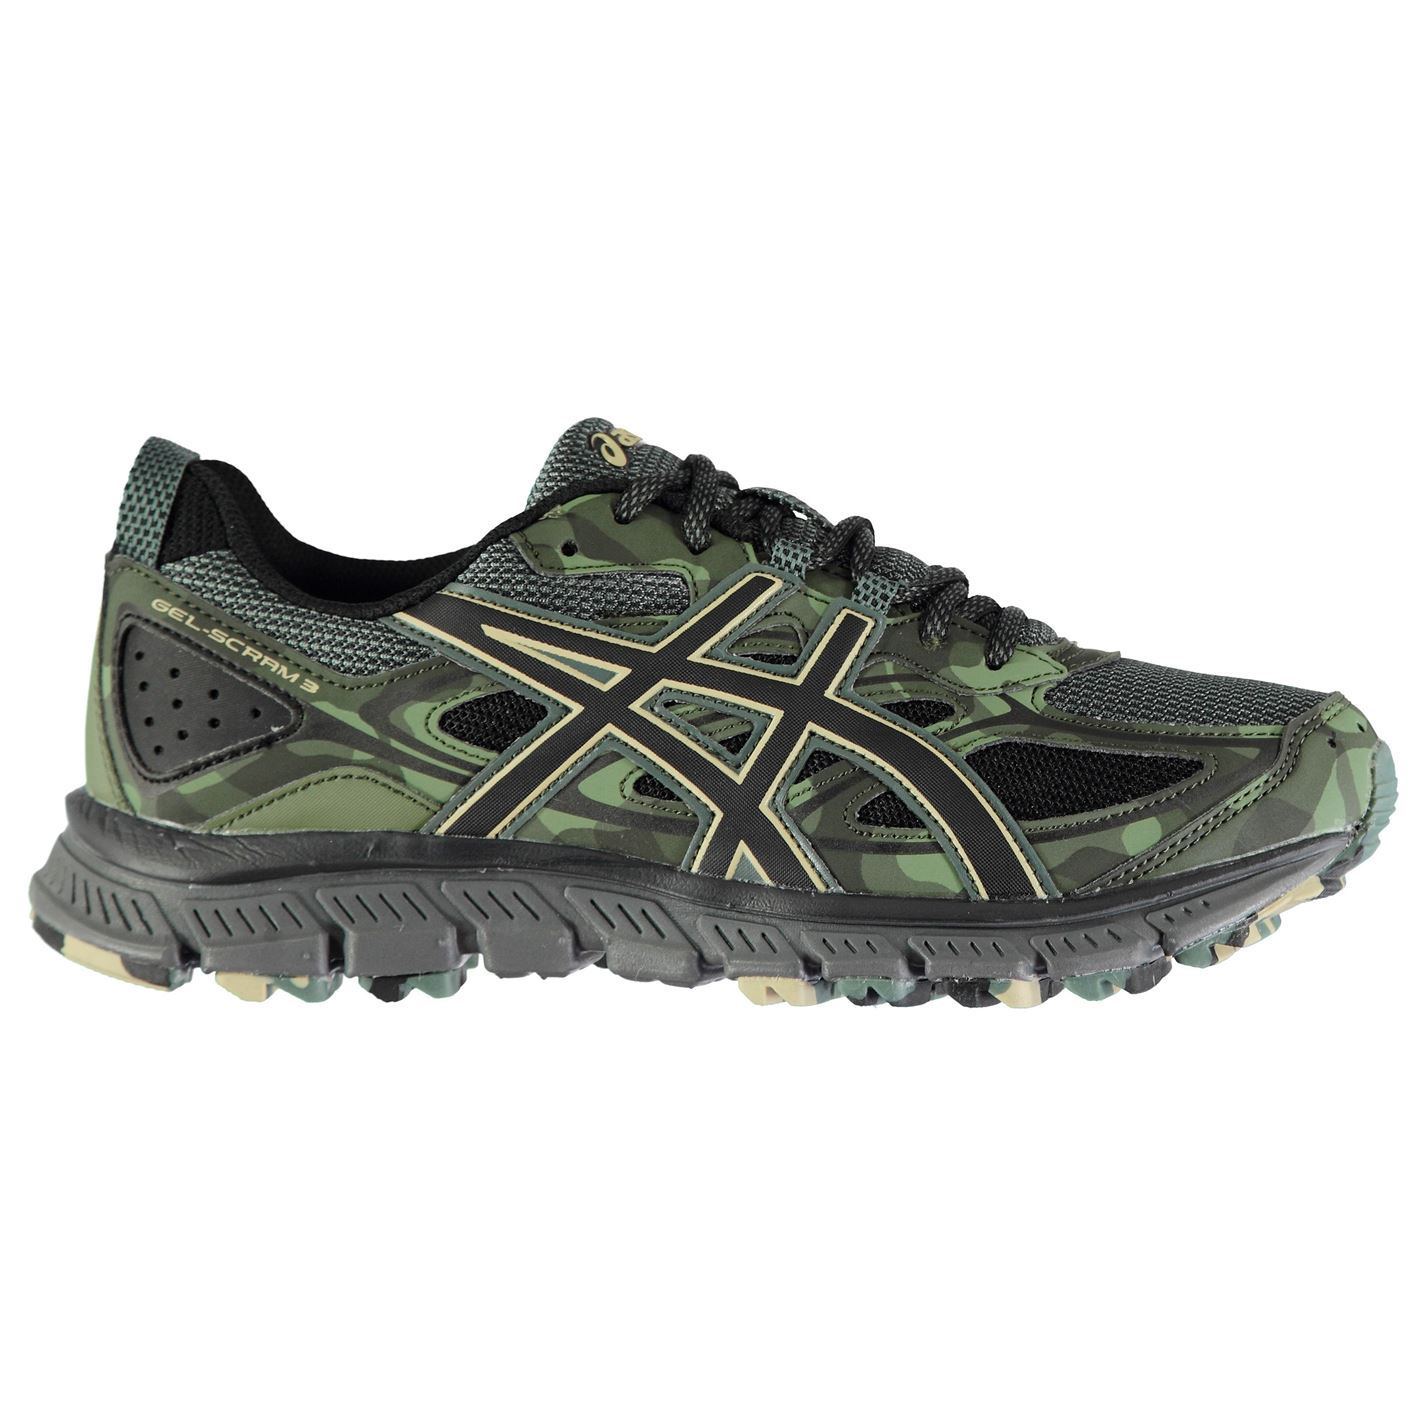 best service 164a3 600b2 Asics Gel Scram 3 Running Shoes Mens Fitness Jogging ...